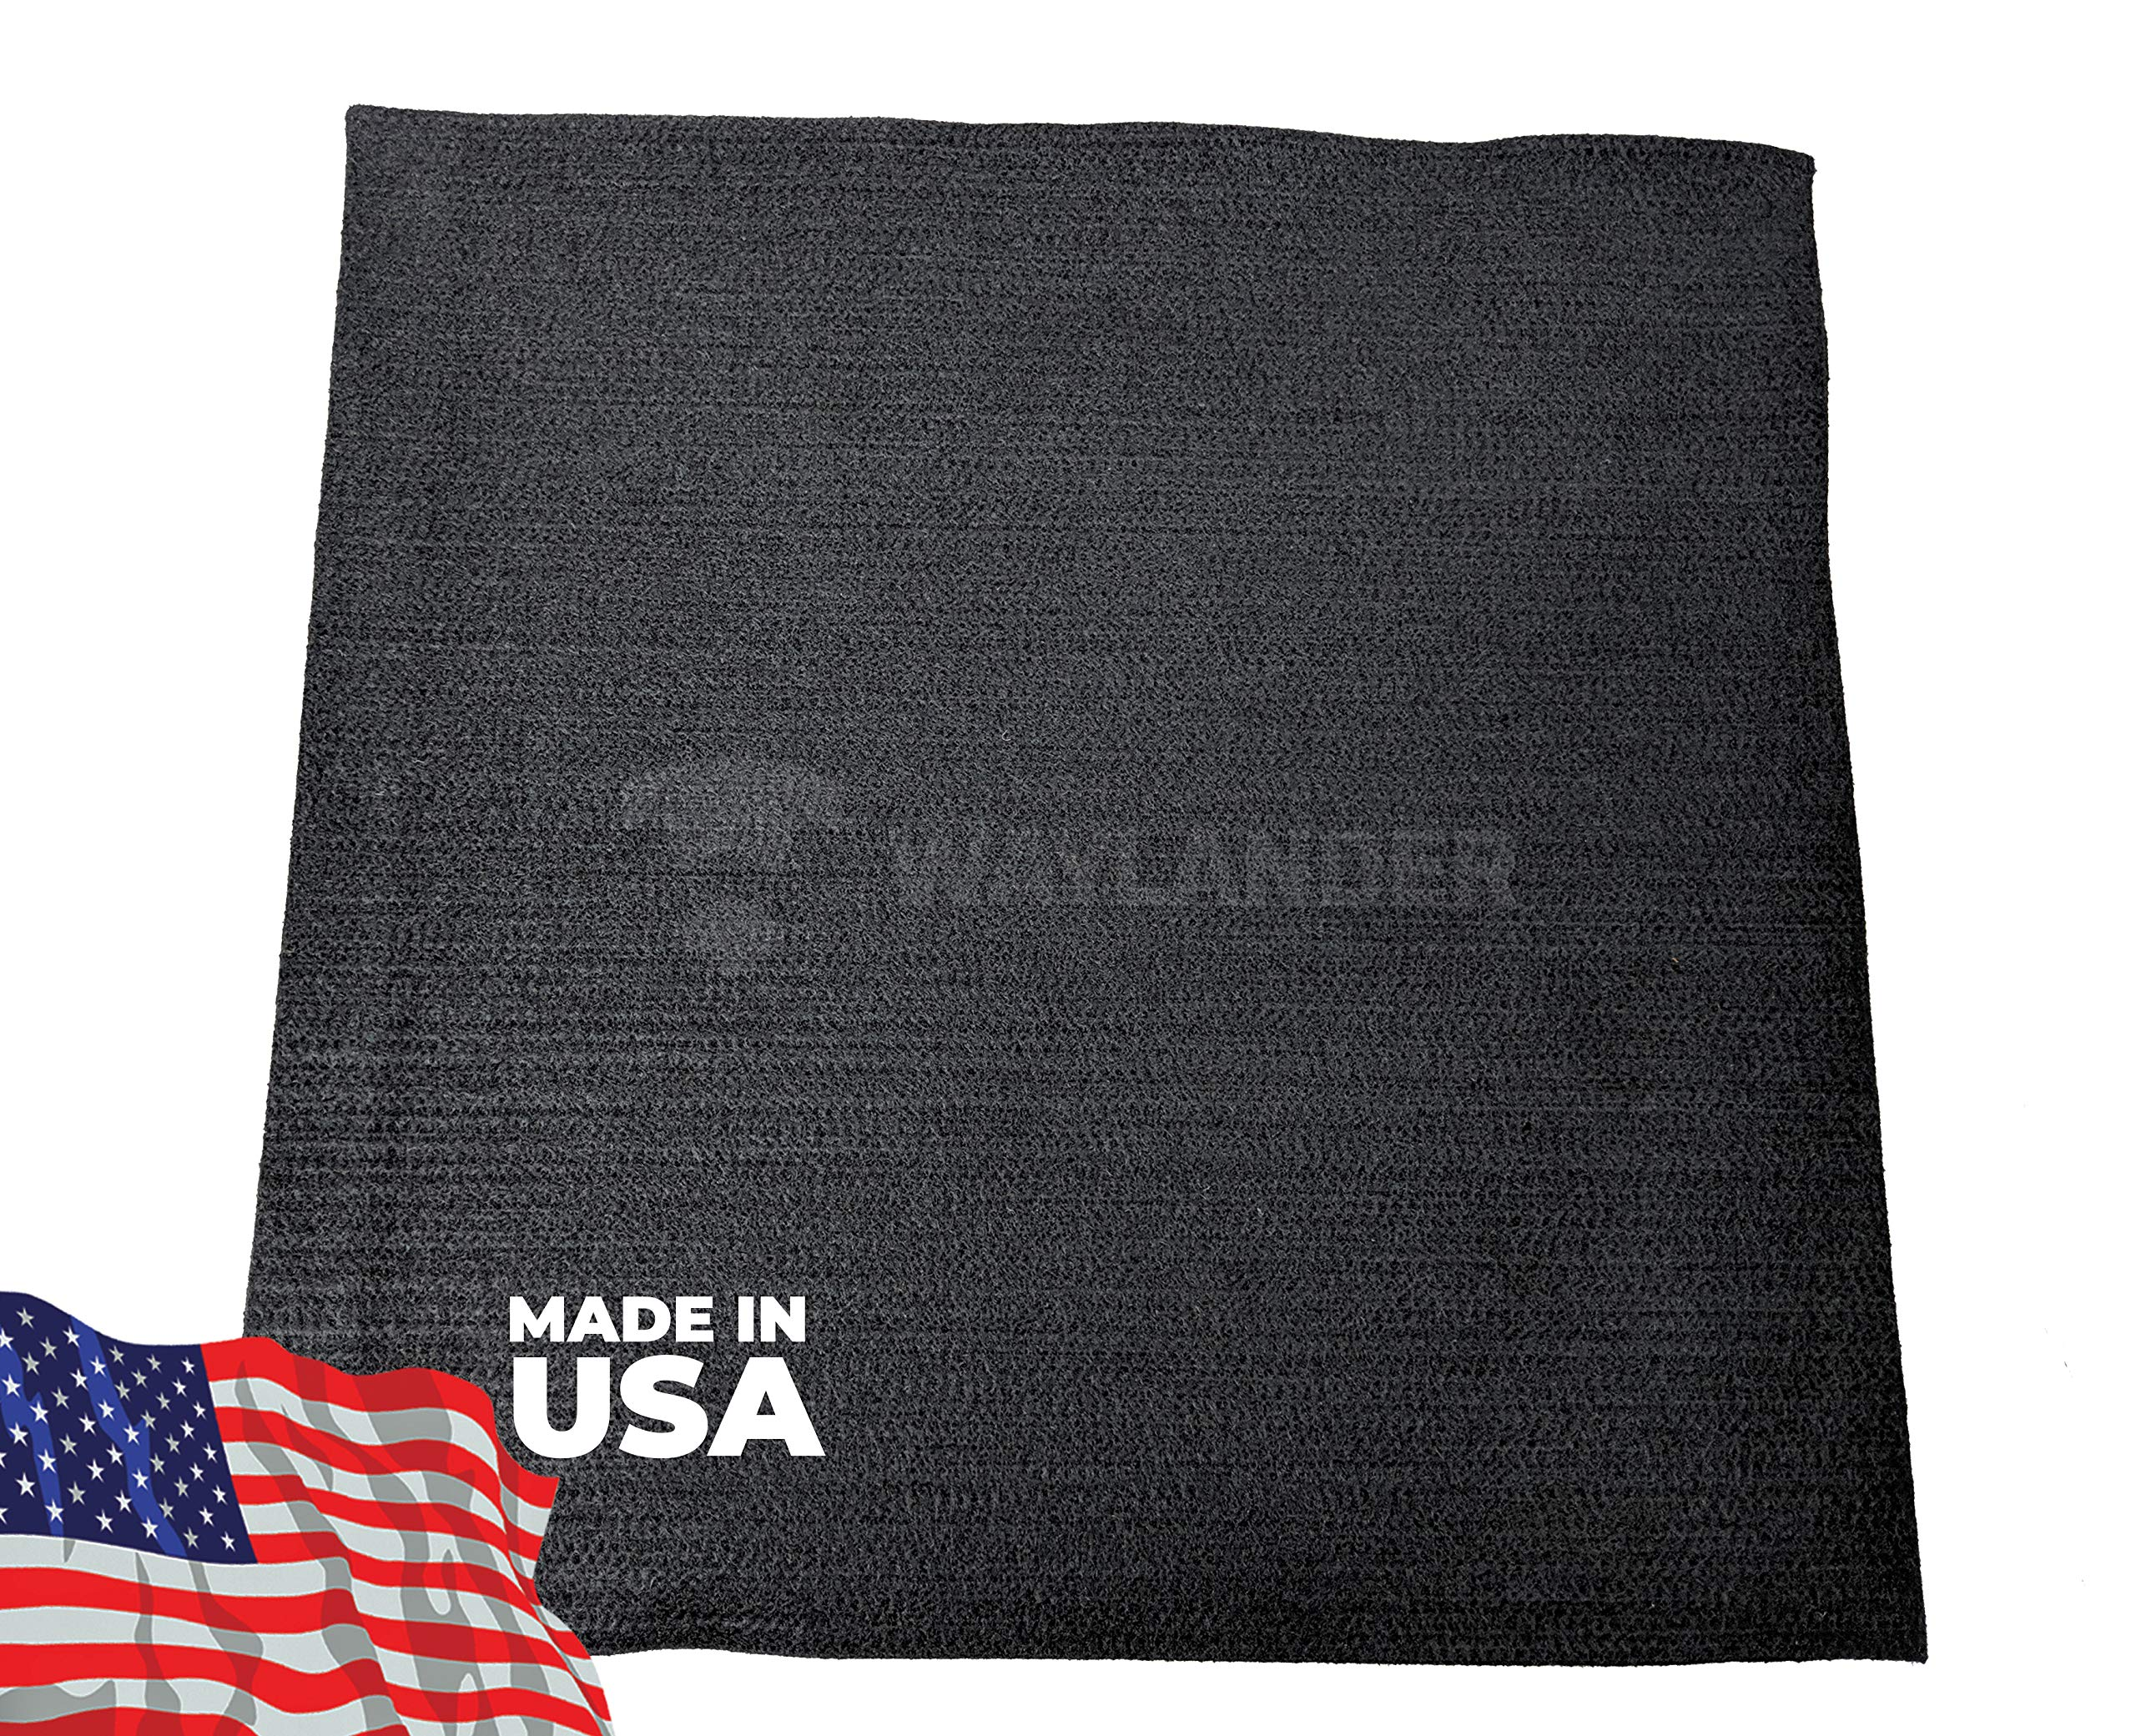 Waylander Welding Felt Carbon Fiber Blanket 3'x3' Made in USA 1800°F High Temperature Resistant